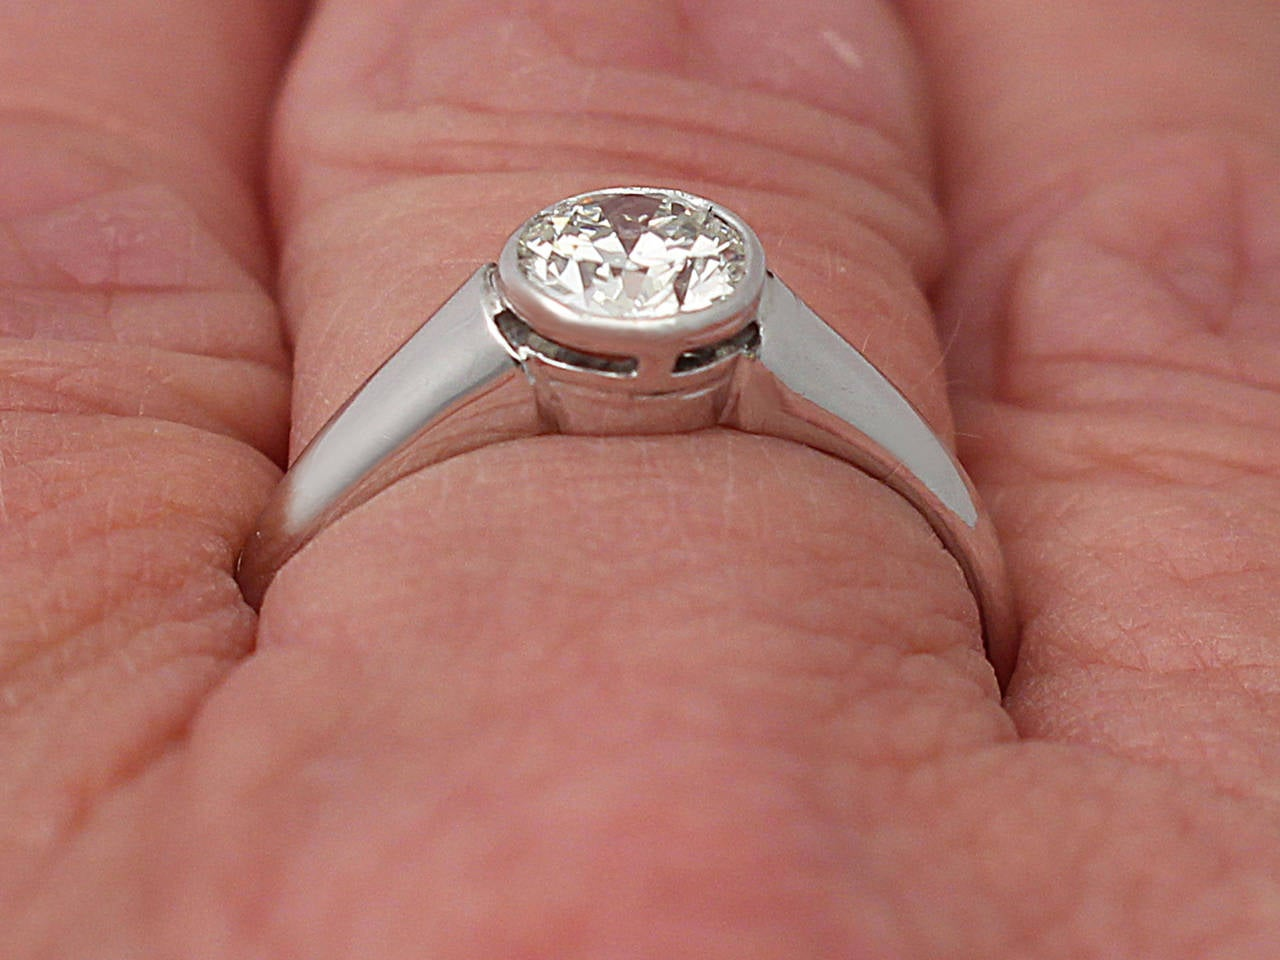 Antique 1930s Diamond and White Gold Solitaire Ring For Sale at 1stdibs